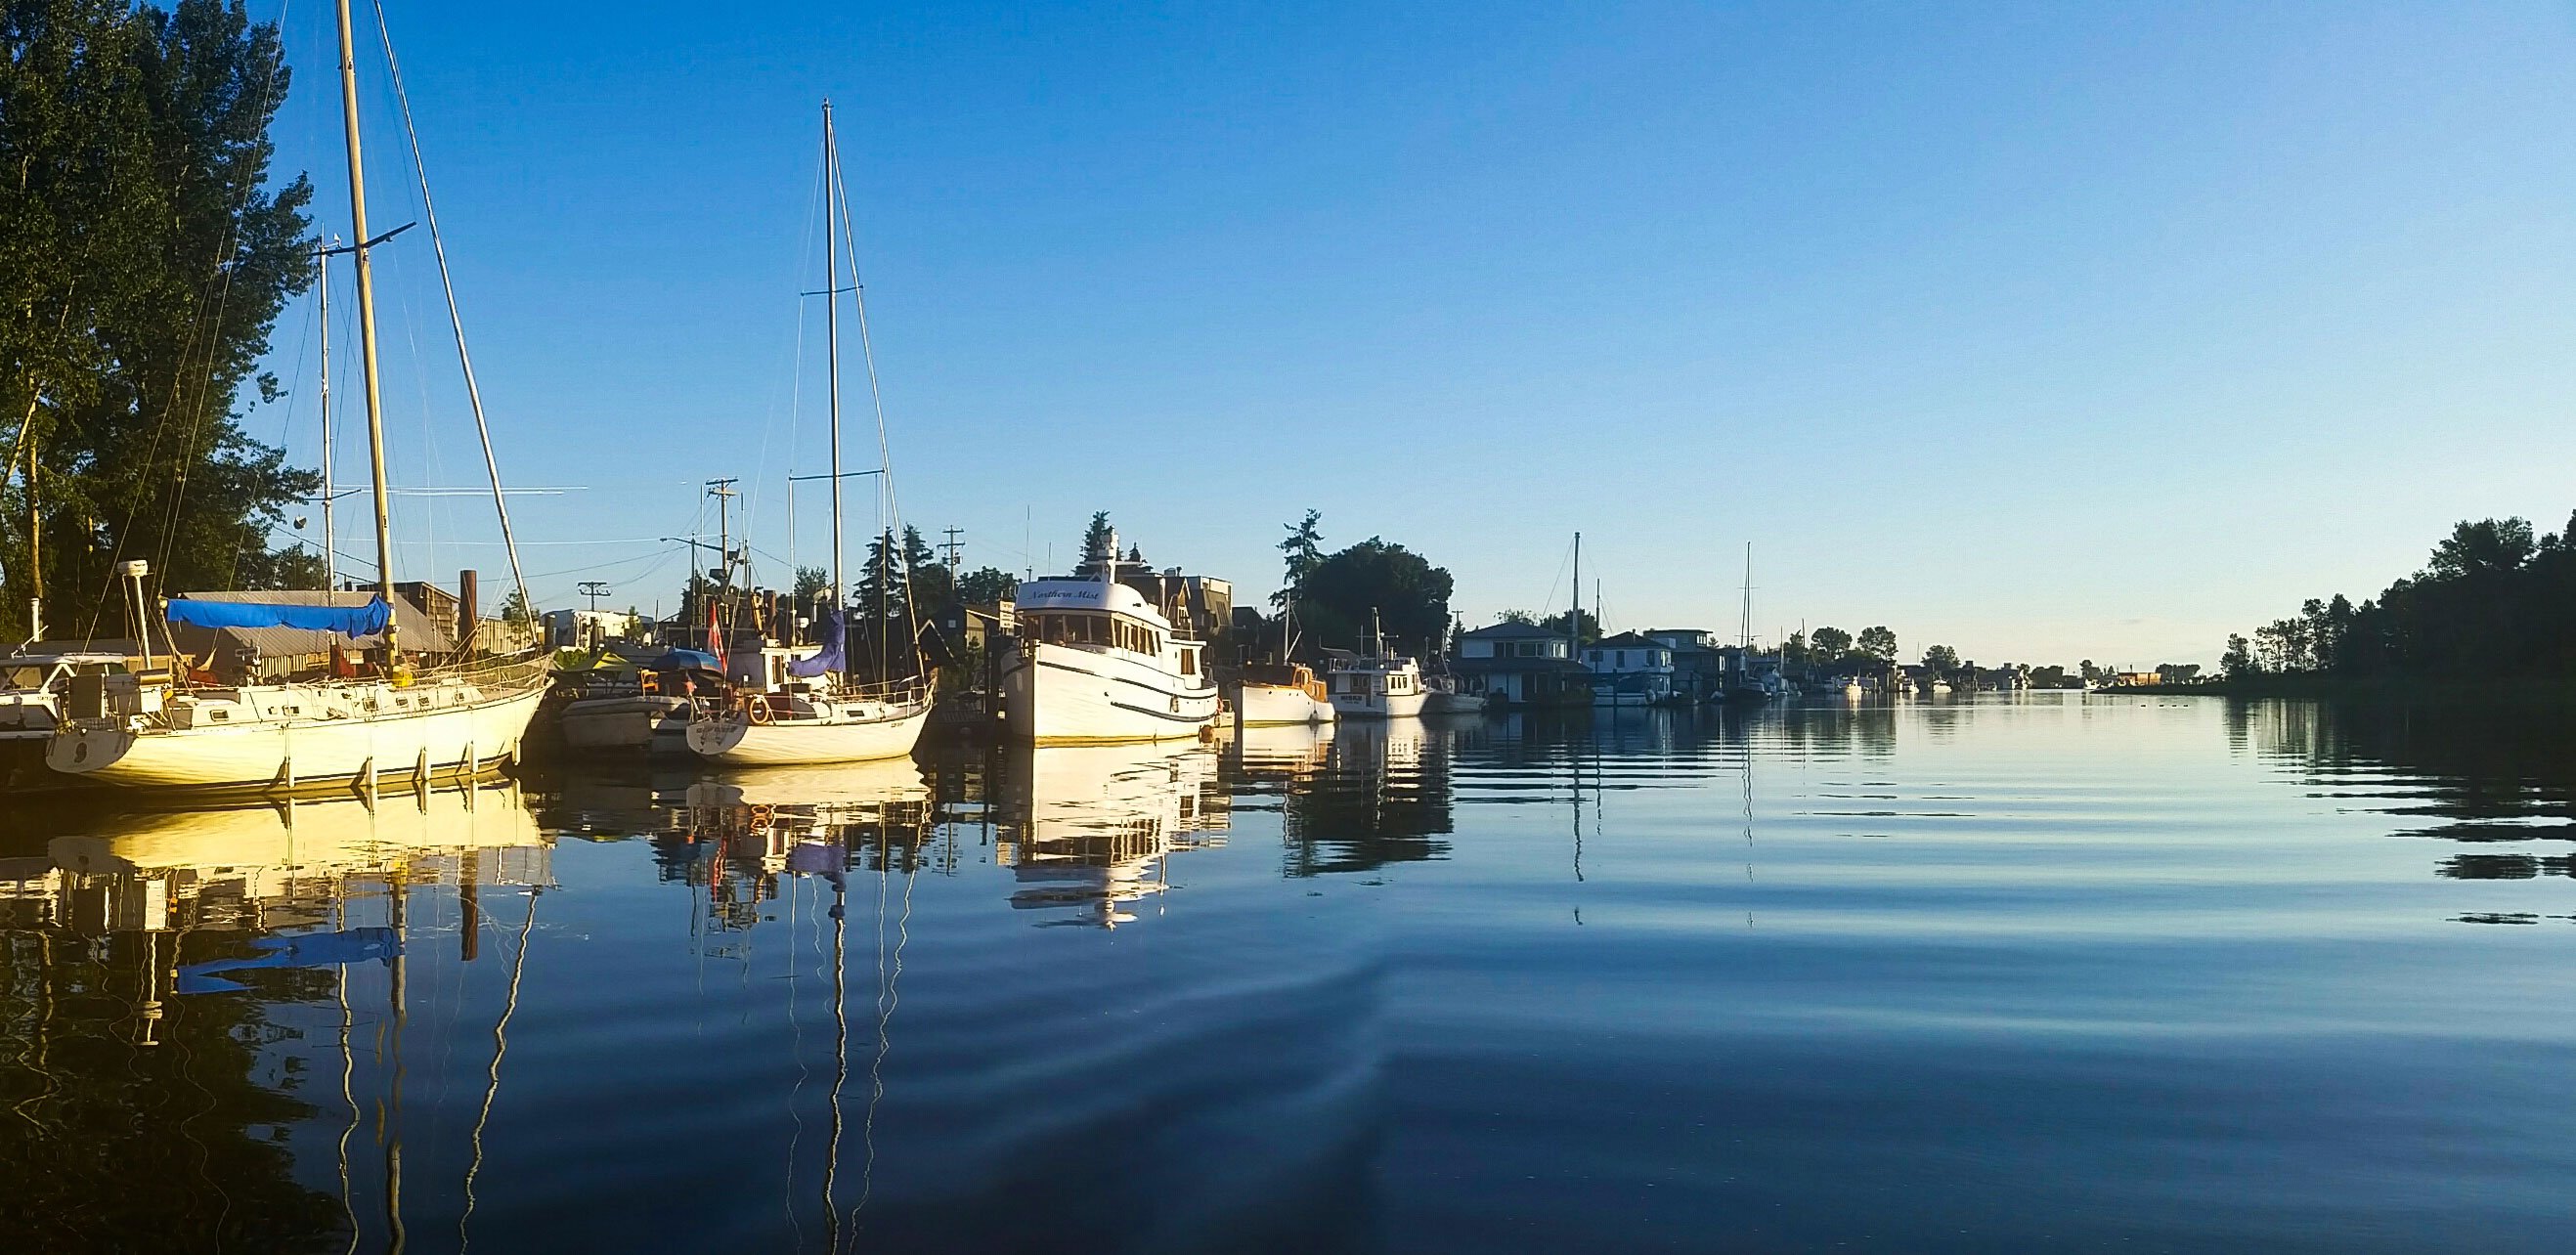 Ladner Pleasure Boats